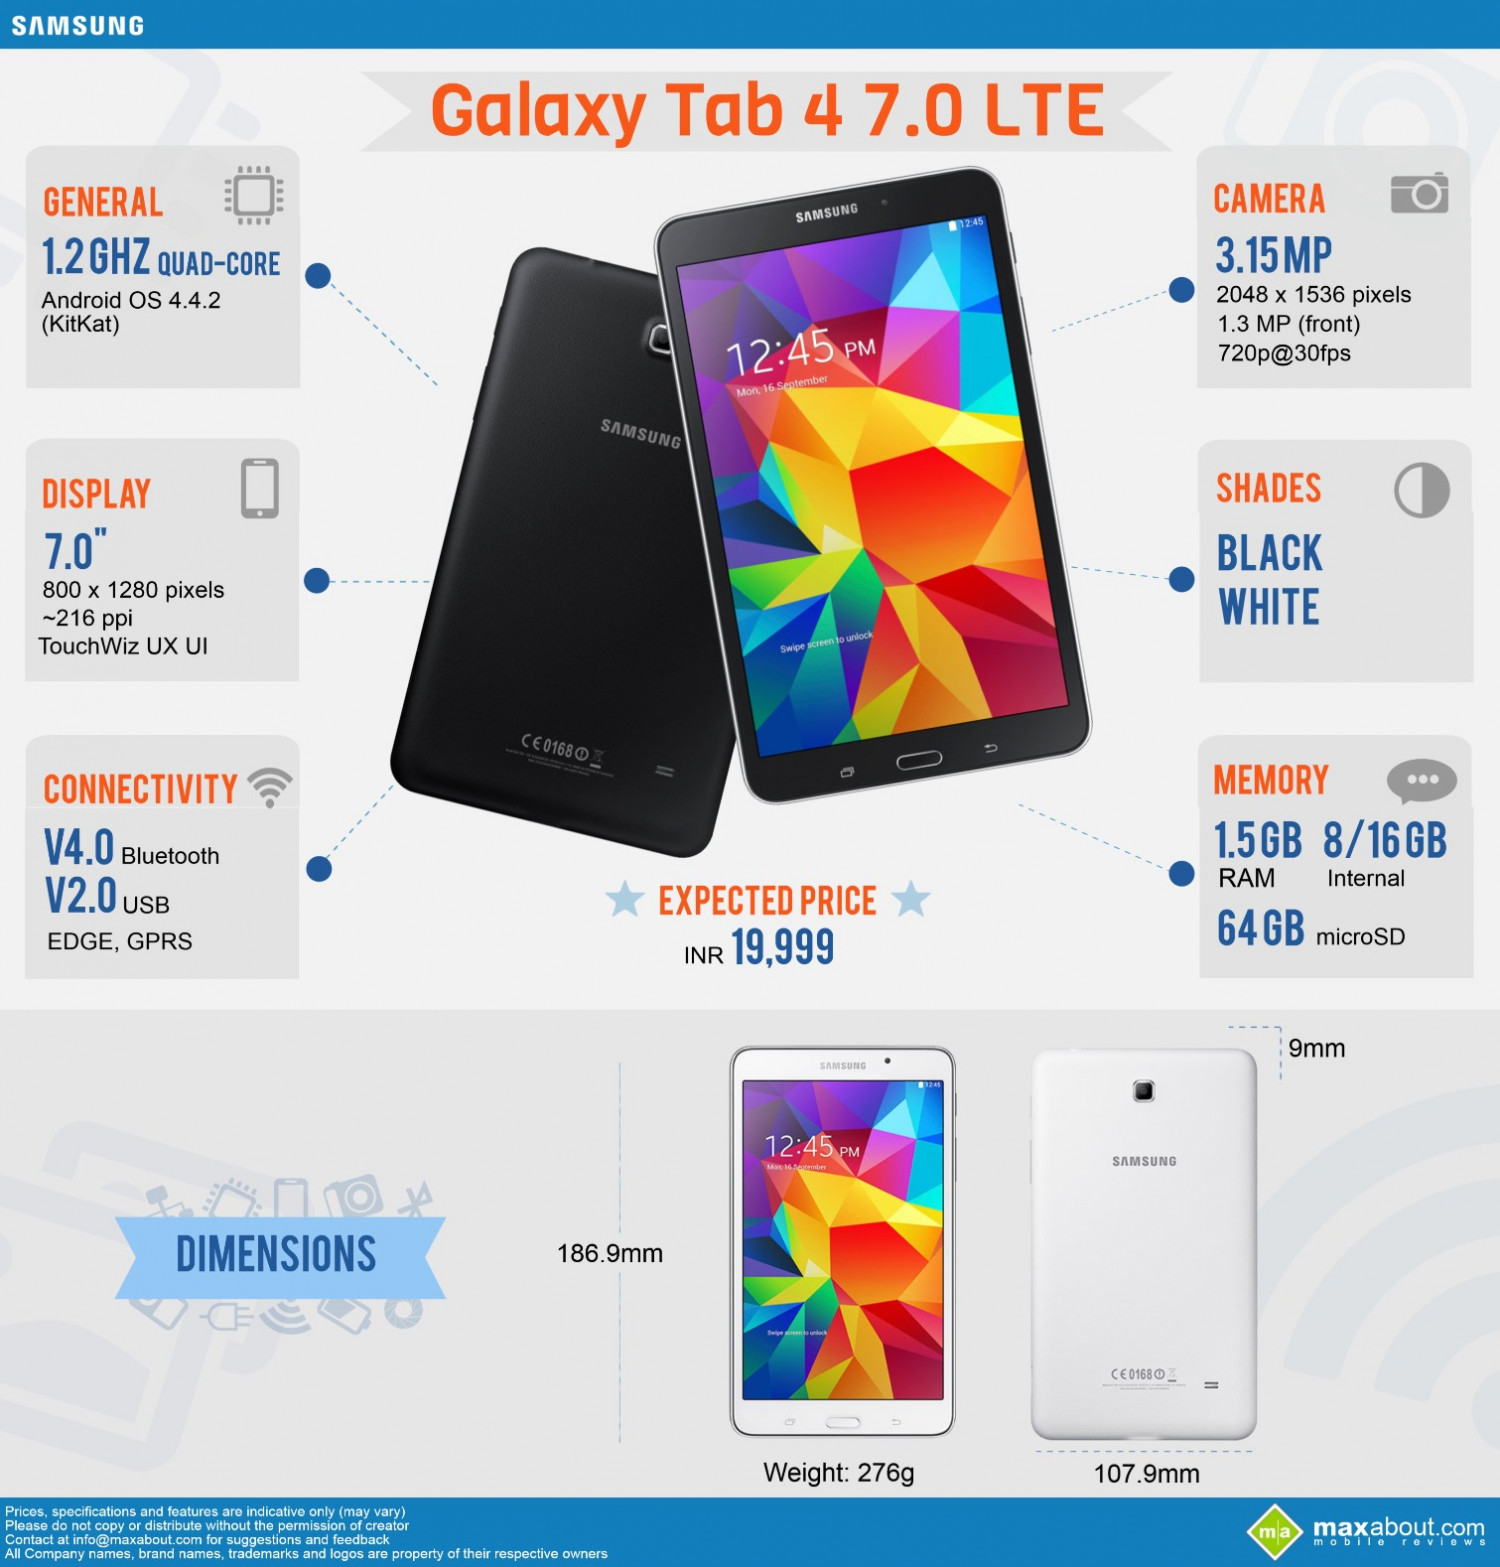 Fast Facts: Samsung Galaxy Tab 4 7.0 LTE Infographic